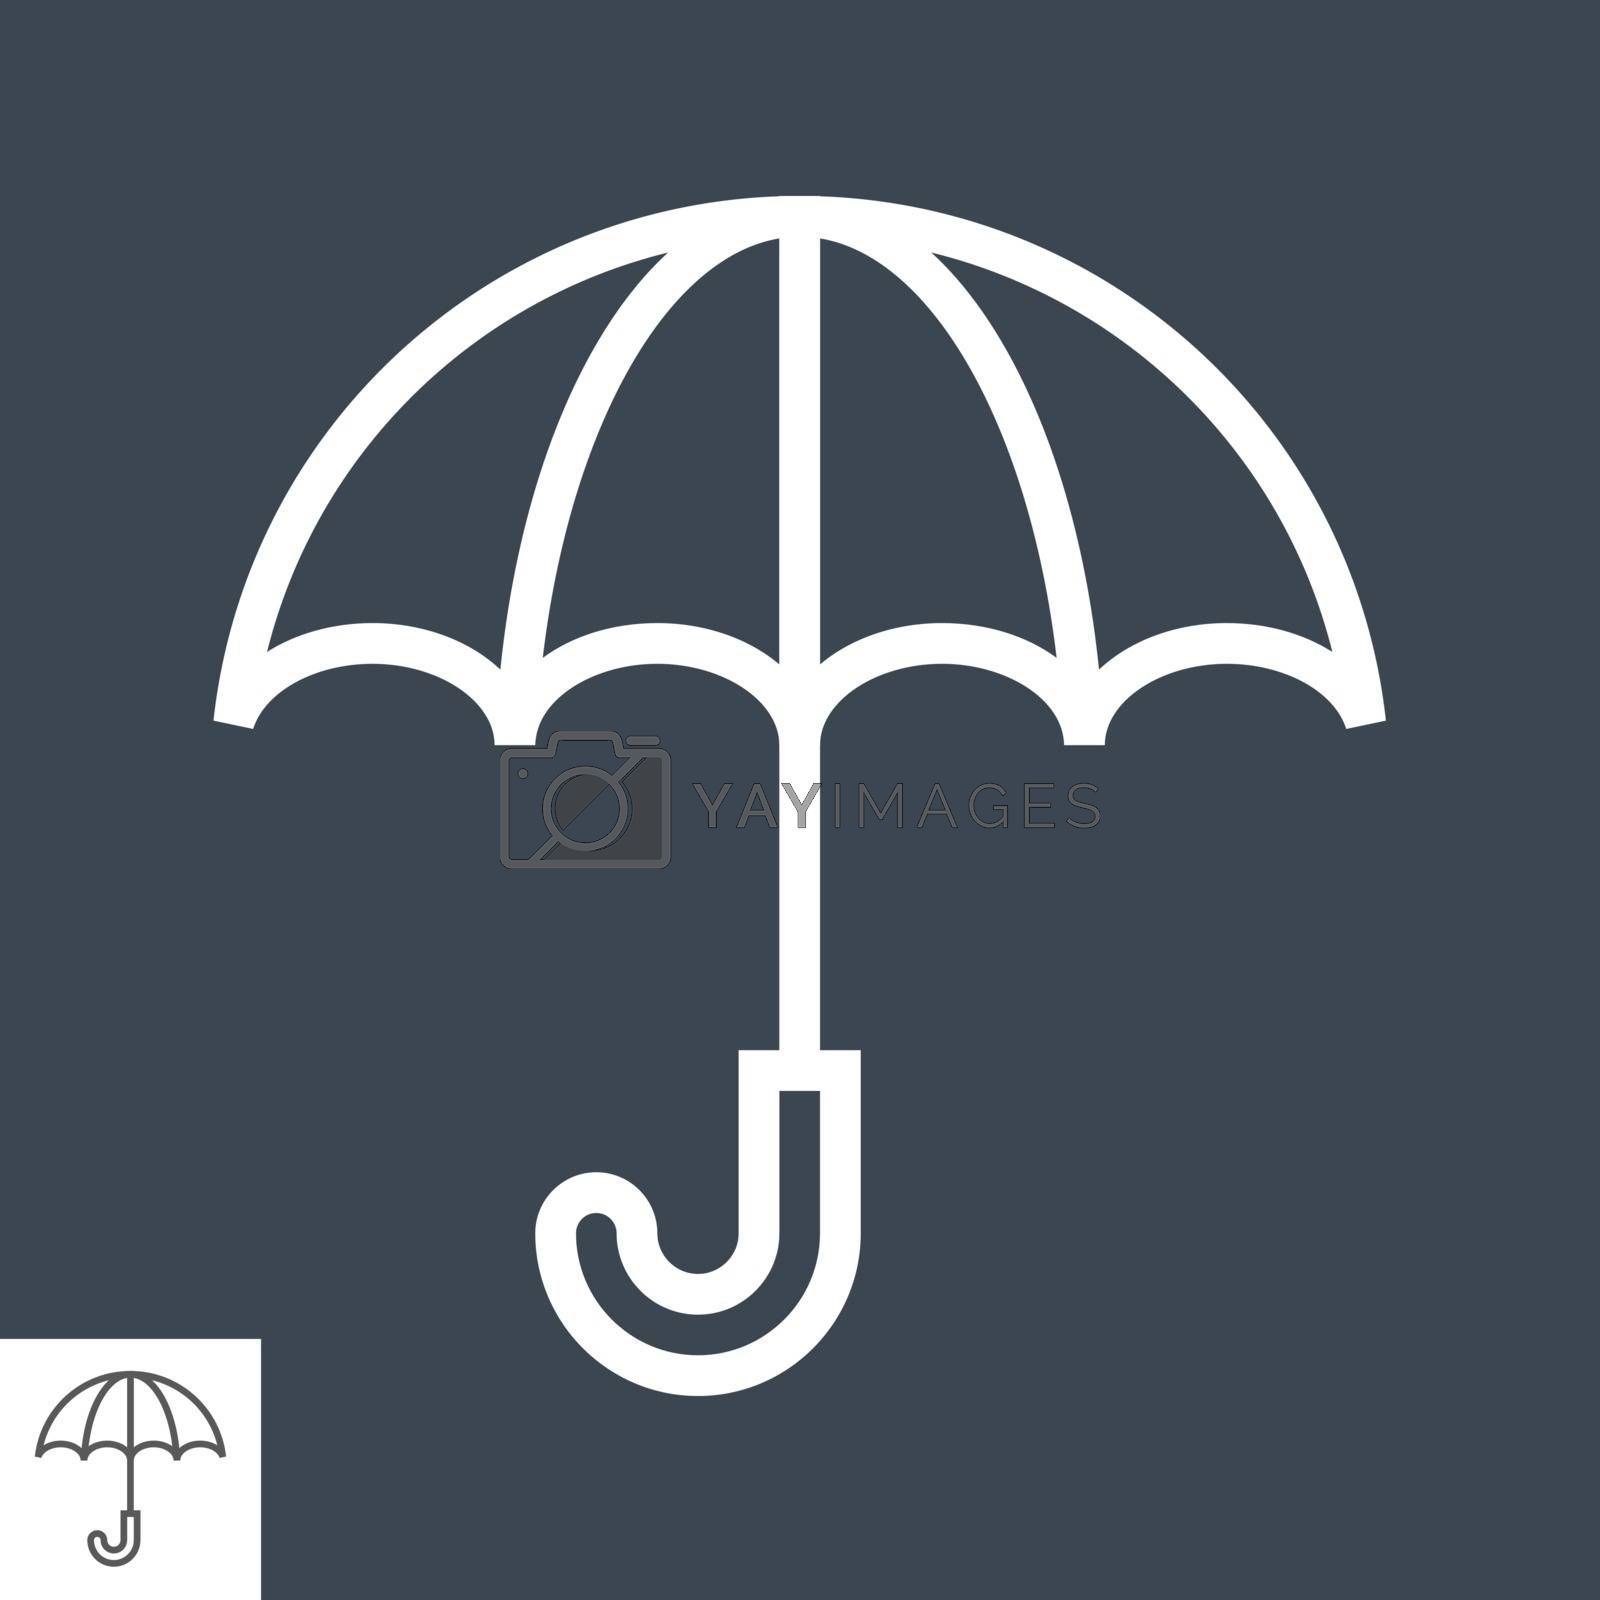 Umbrella Icon. Thin Line Vector Illustration. Adjust stroke weight - Expand to any Size - Easy Change Colour - Editable Stroke - Pixel Perfect